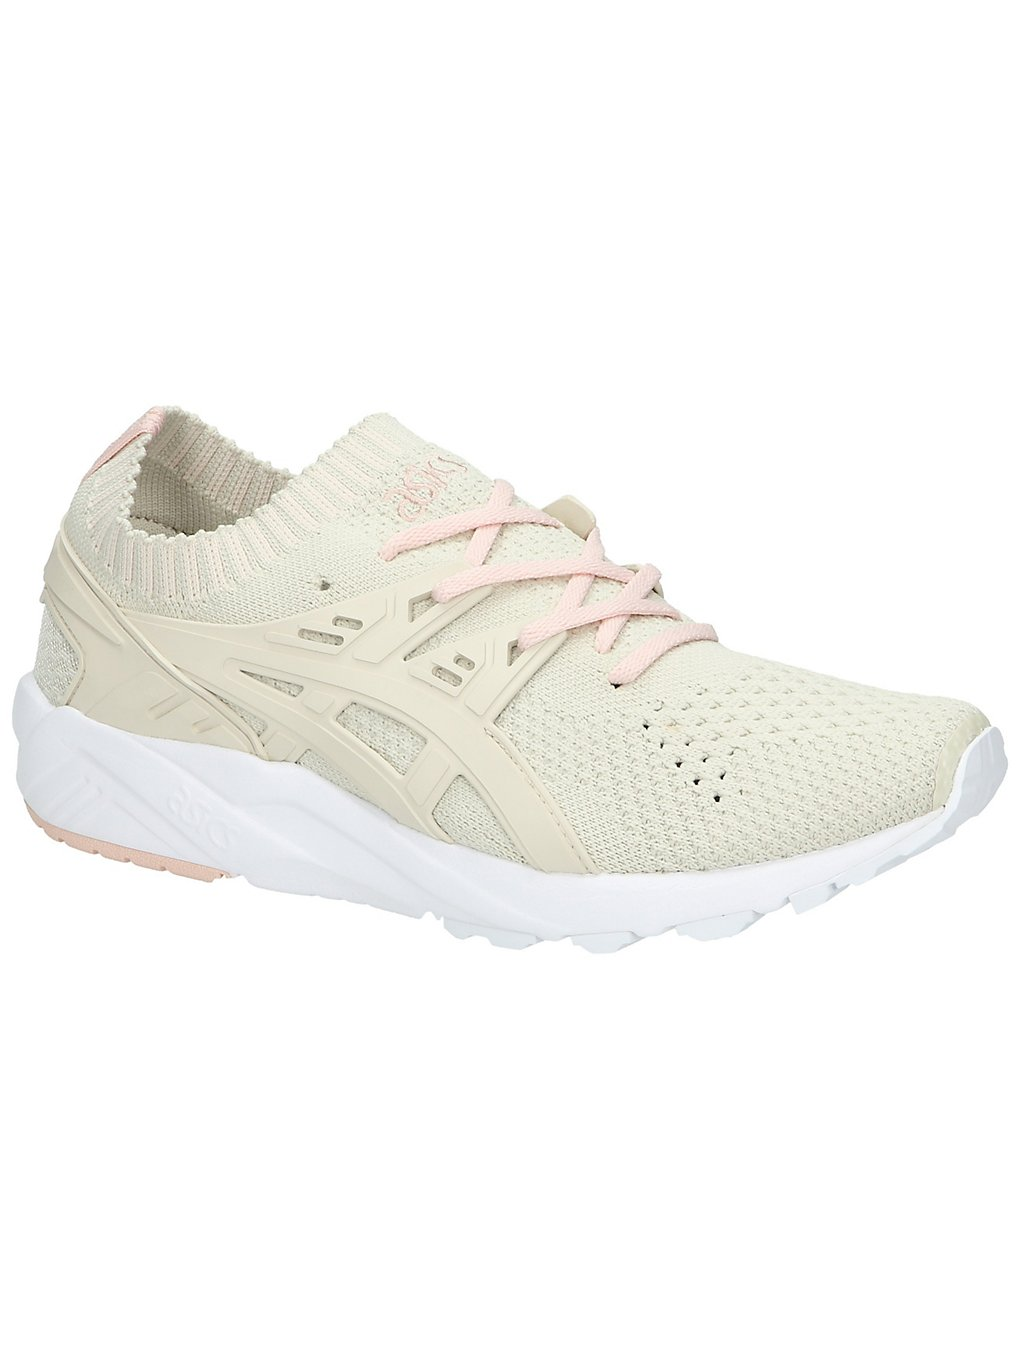 Image of Asics Gel-Kayano Trainer Knit Sneakers Women